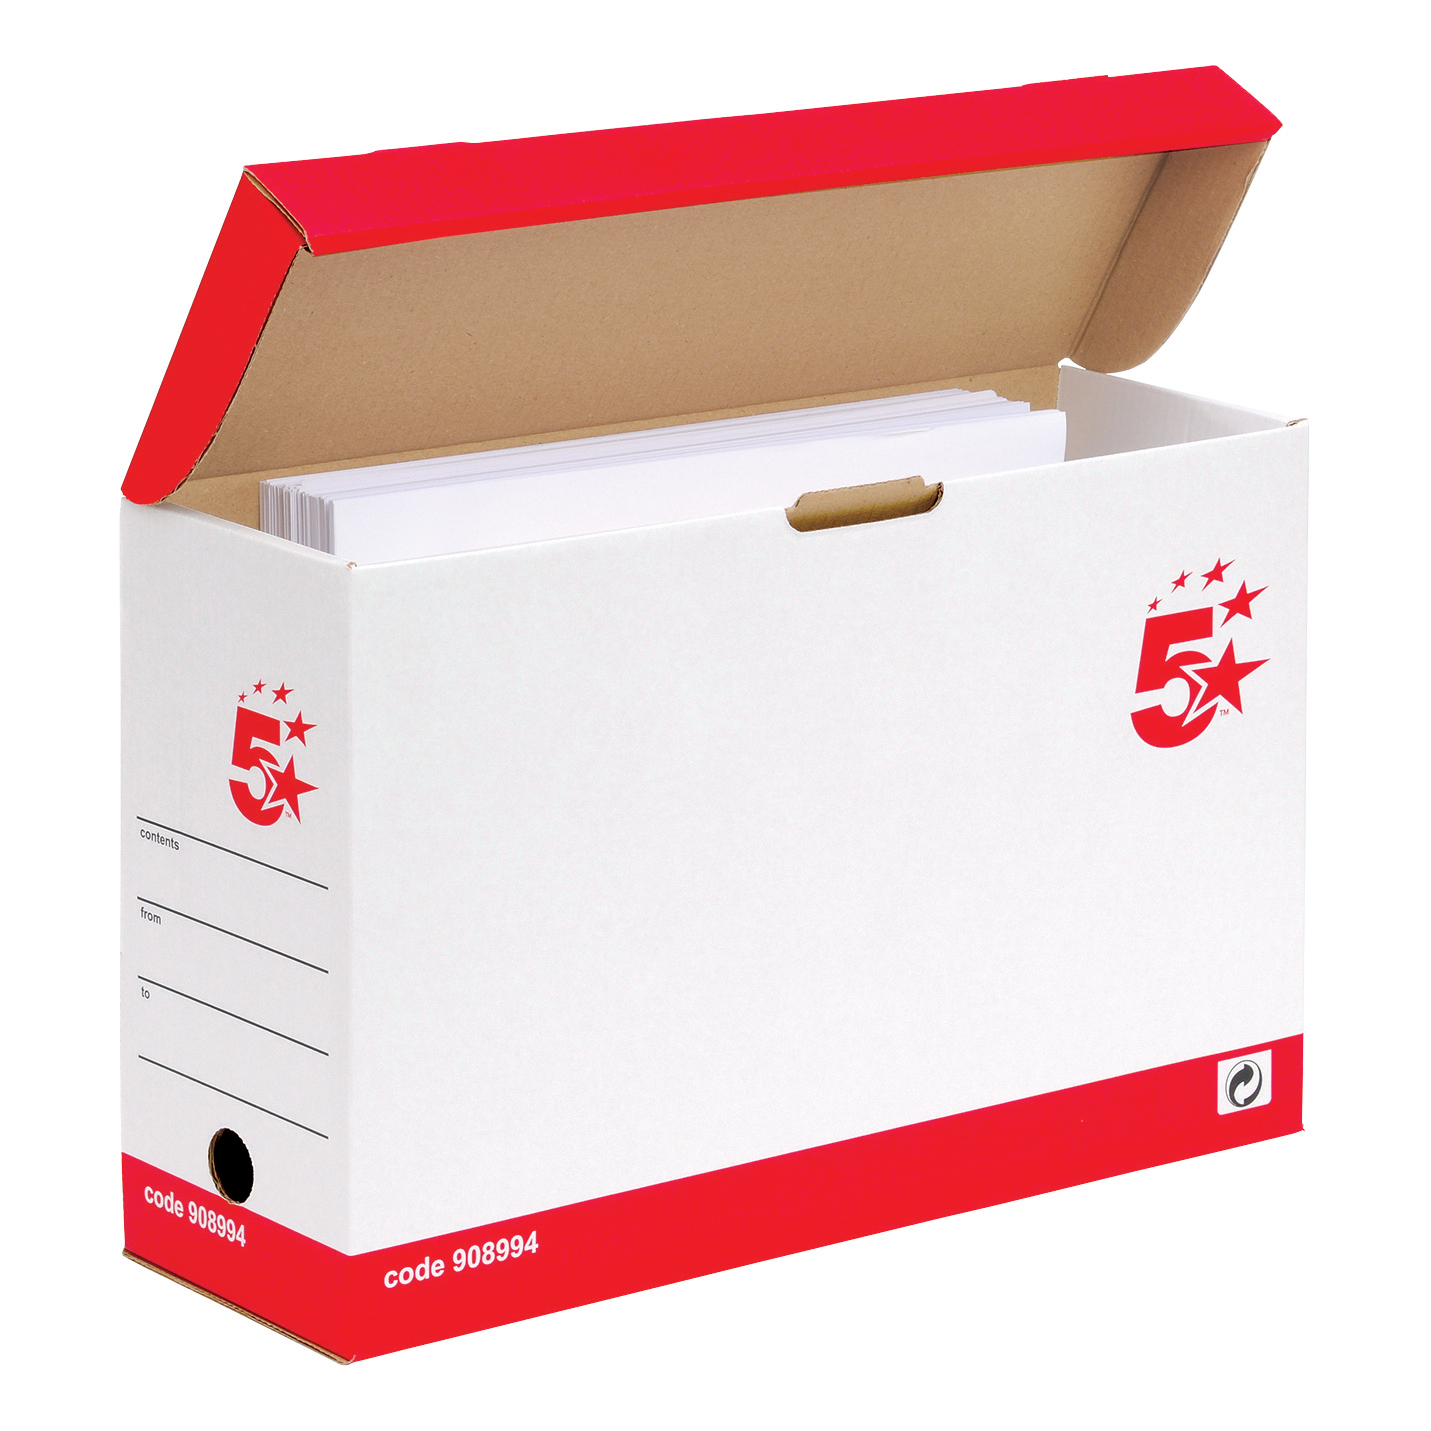 Transfer Files 5 Star Office FSC Transfer Case Hinged Lid Foolscap Self-assembly W133xD401xH257mm Red & White Pack 20